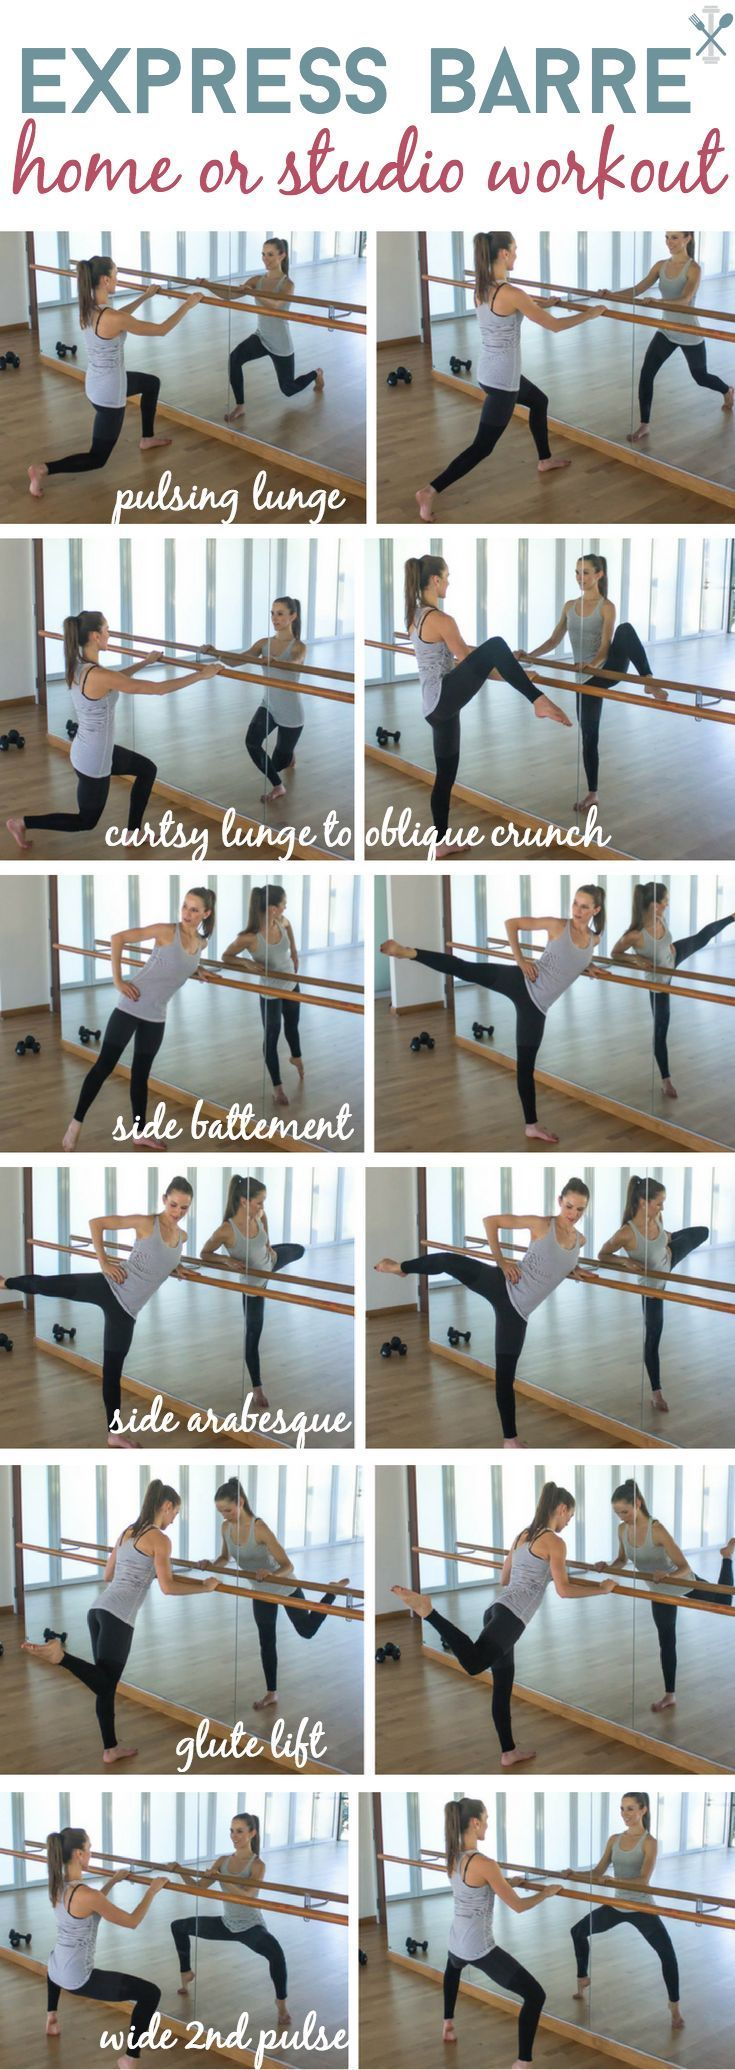 The best barre workout you can do at home, in only 10 minutes! Guaranteed to make you shake and tone your lower body like crazy.